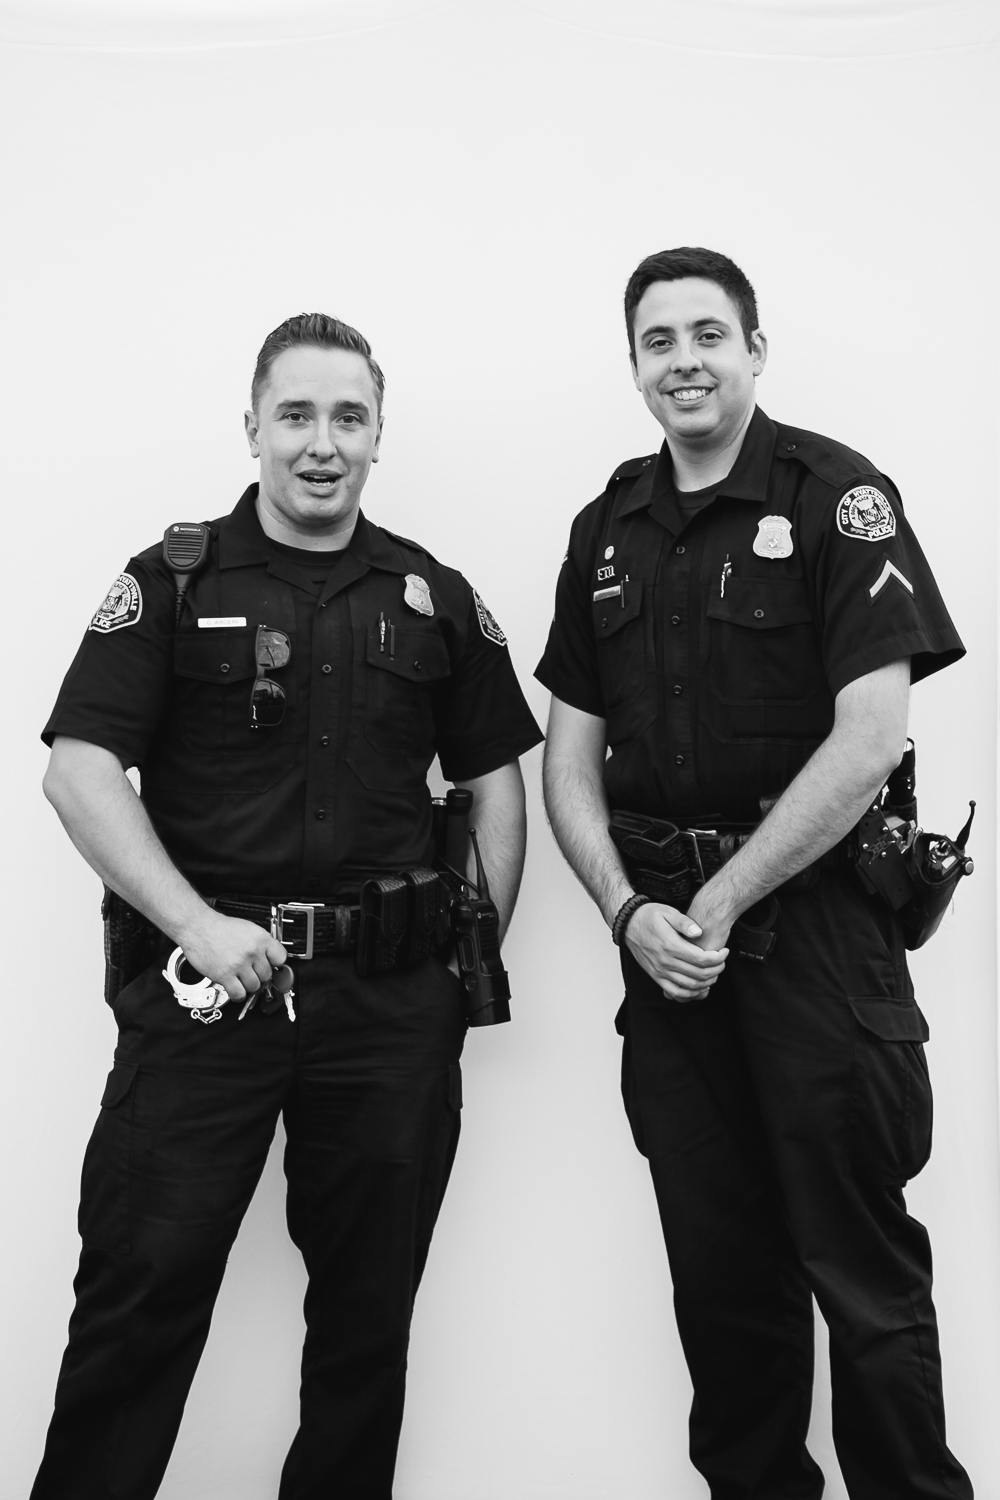 """We like the kind police officers"" Officer Cardoso and Officer Filuta"